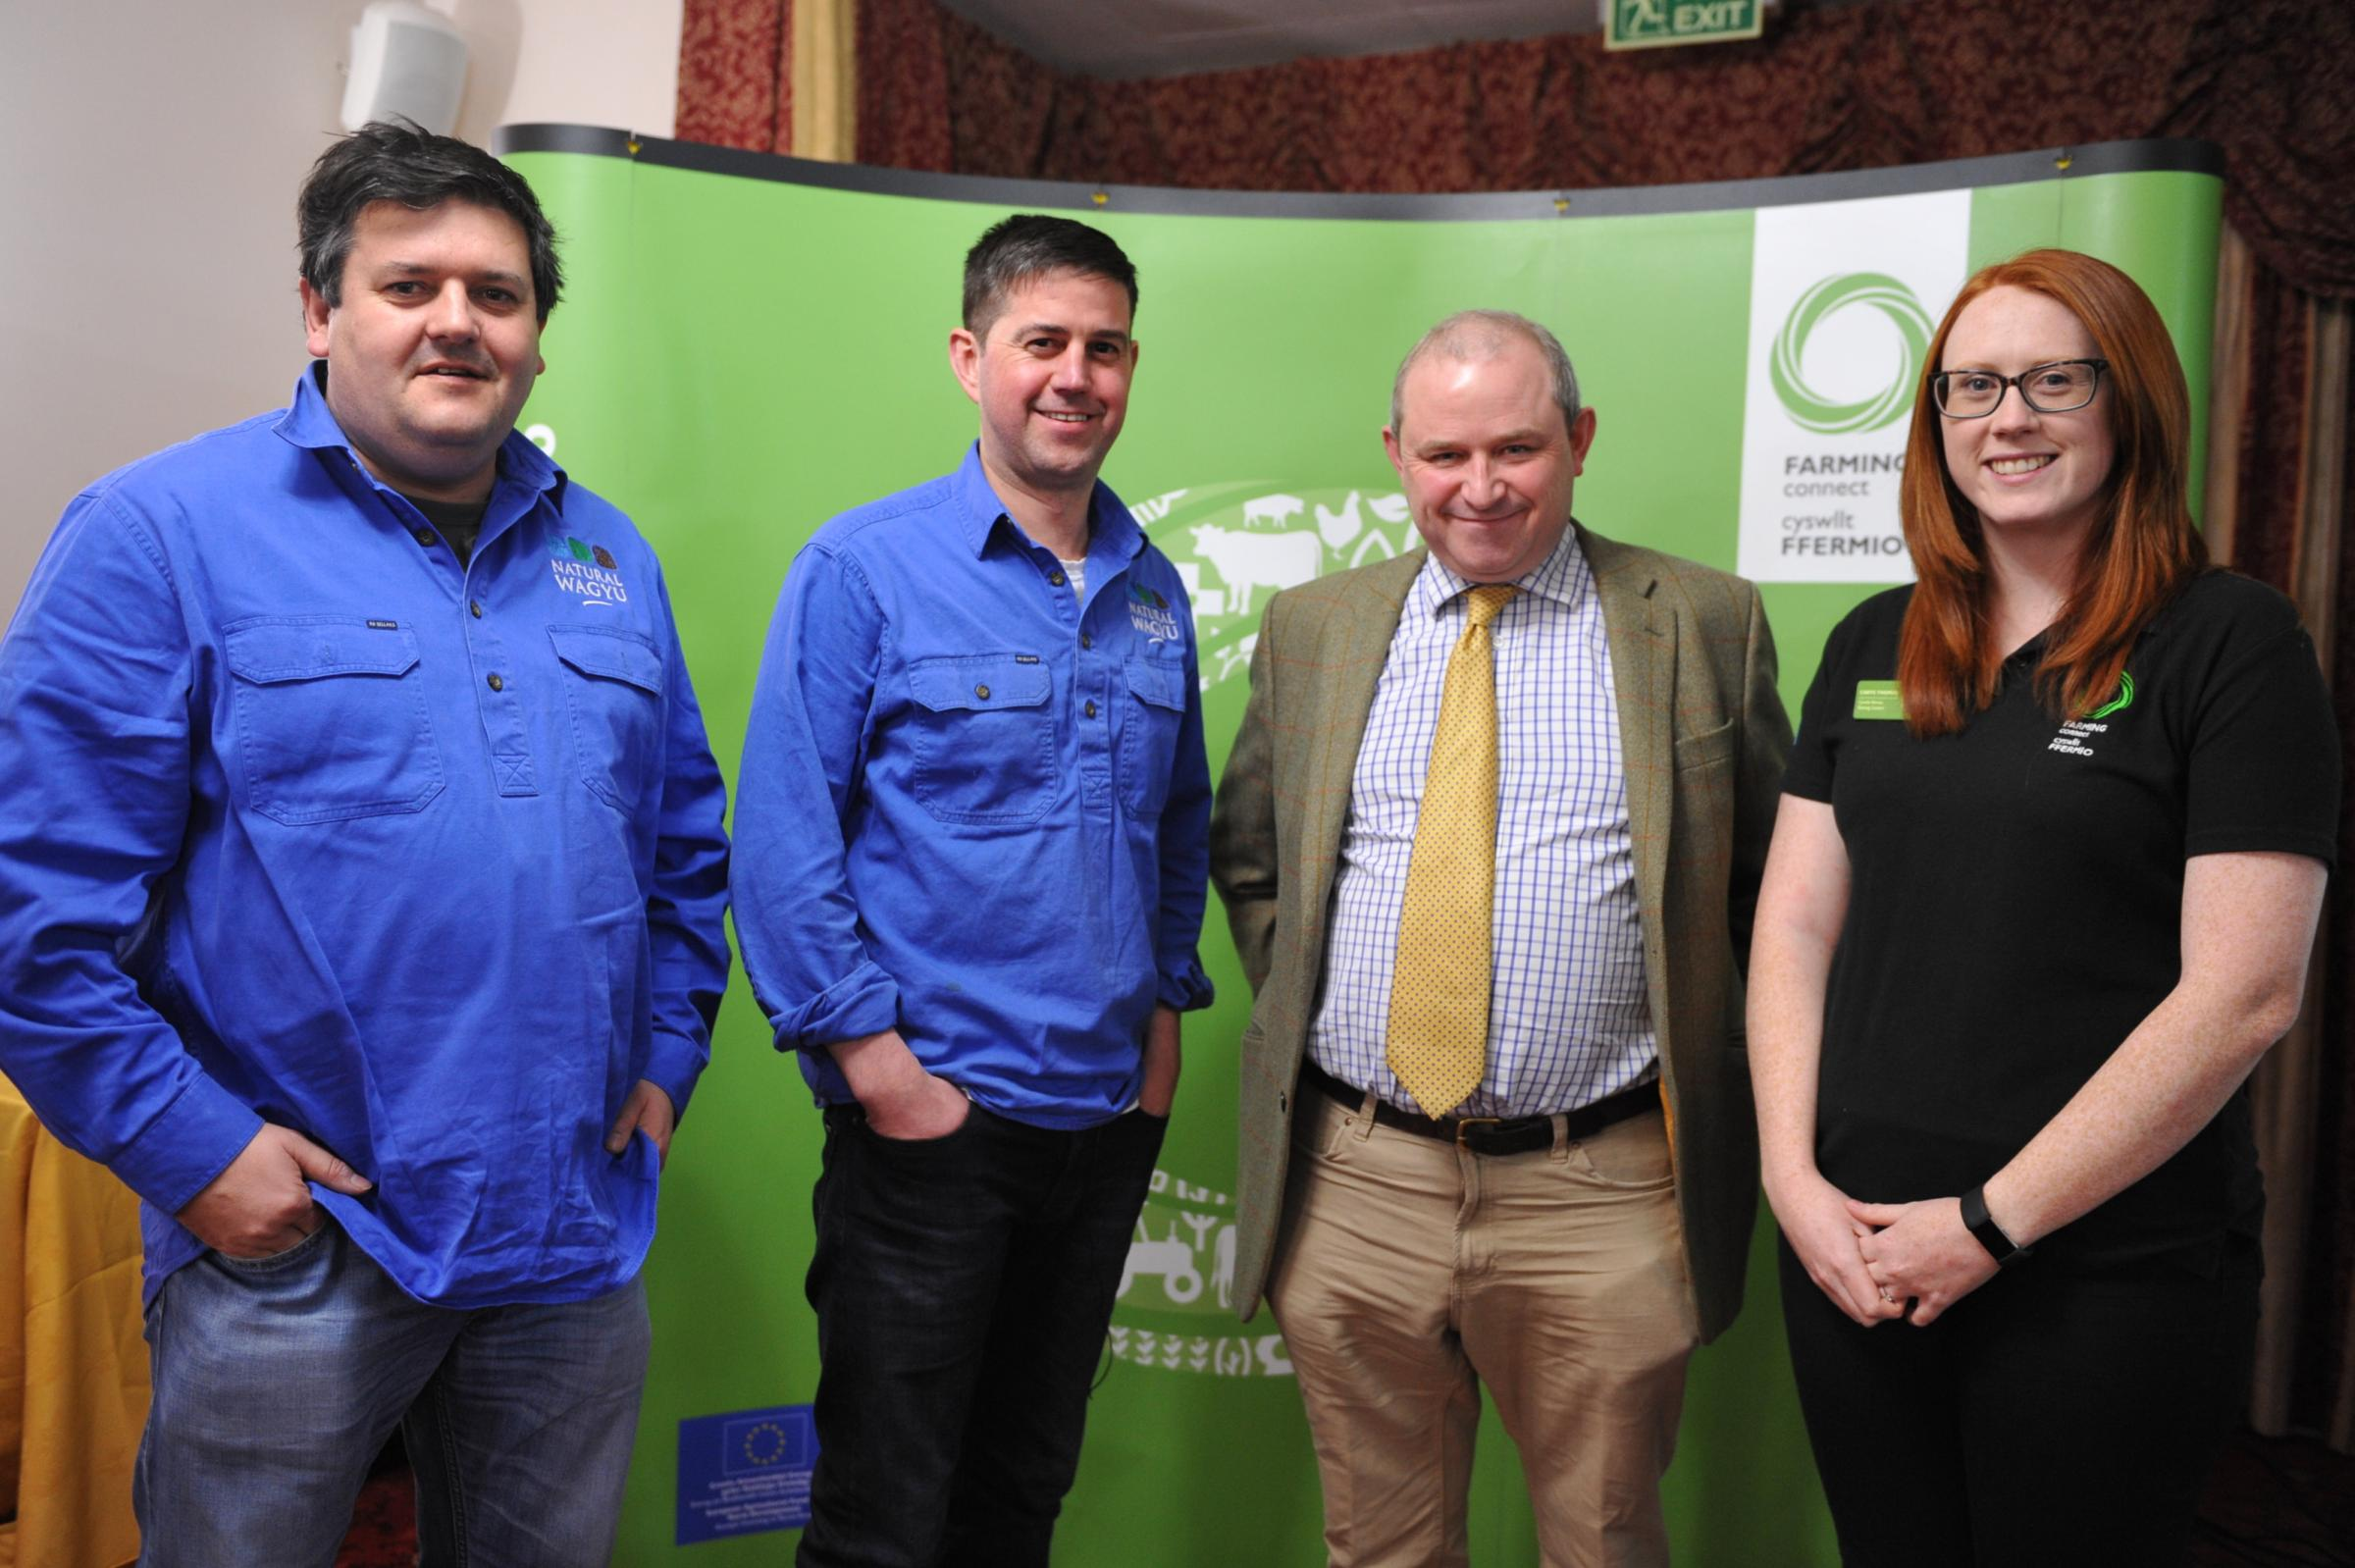 Will Prichard, Rob Cumine, Justin Scale and Carys Thomas at the diversification event